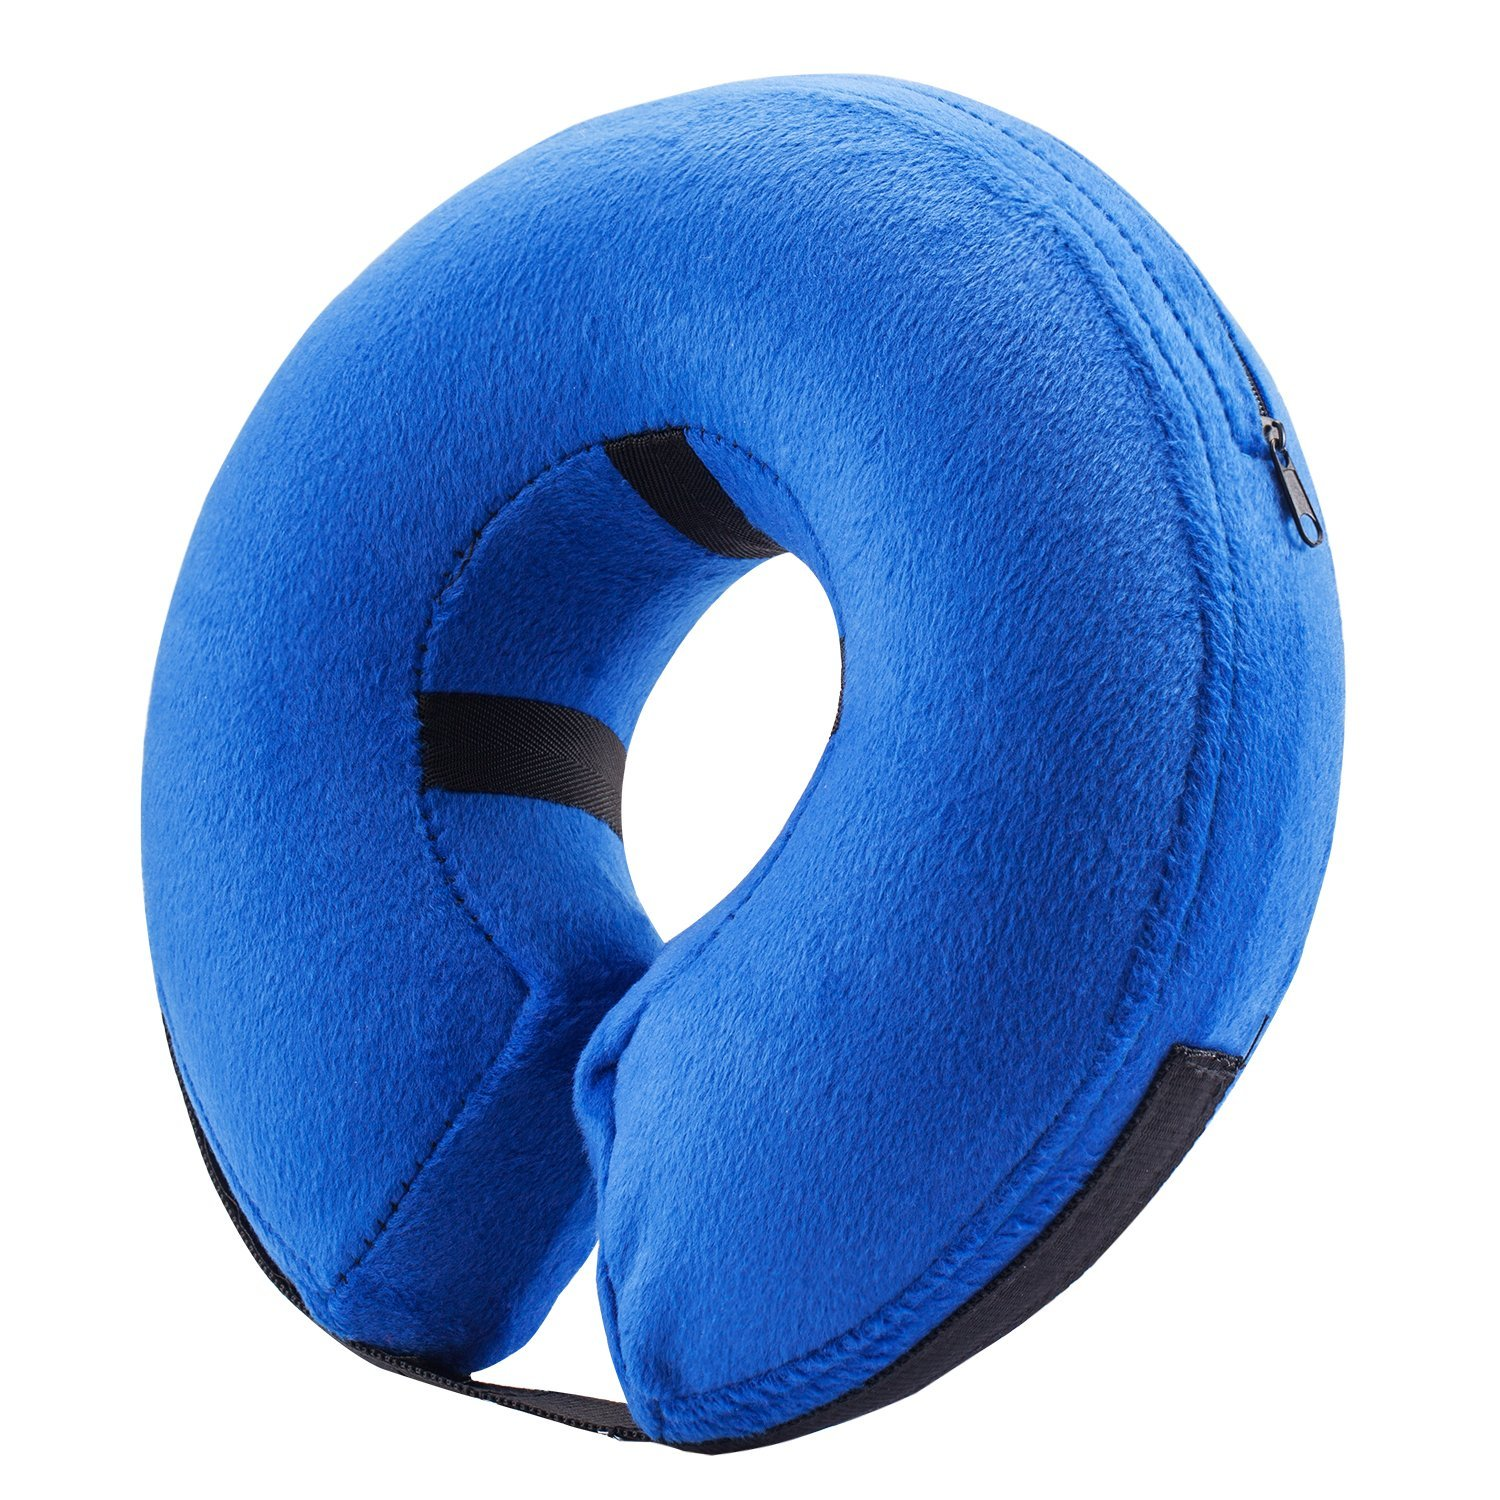 Protective Inflatable Collar Soft Pet Recovery Collar for Dogs